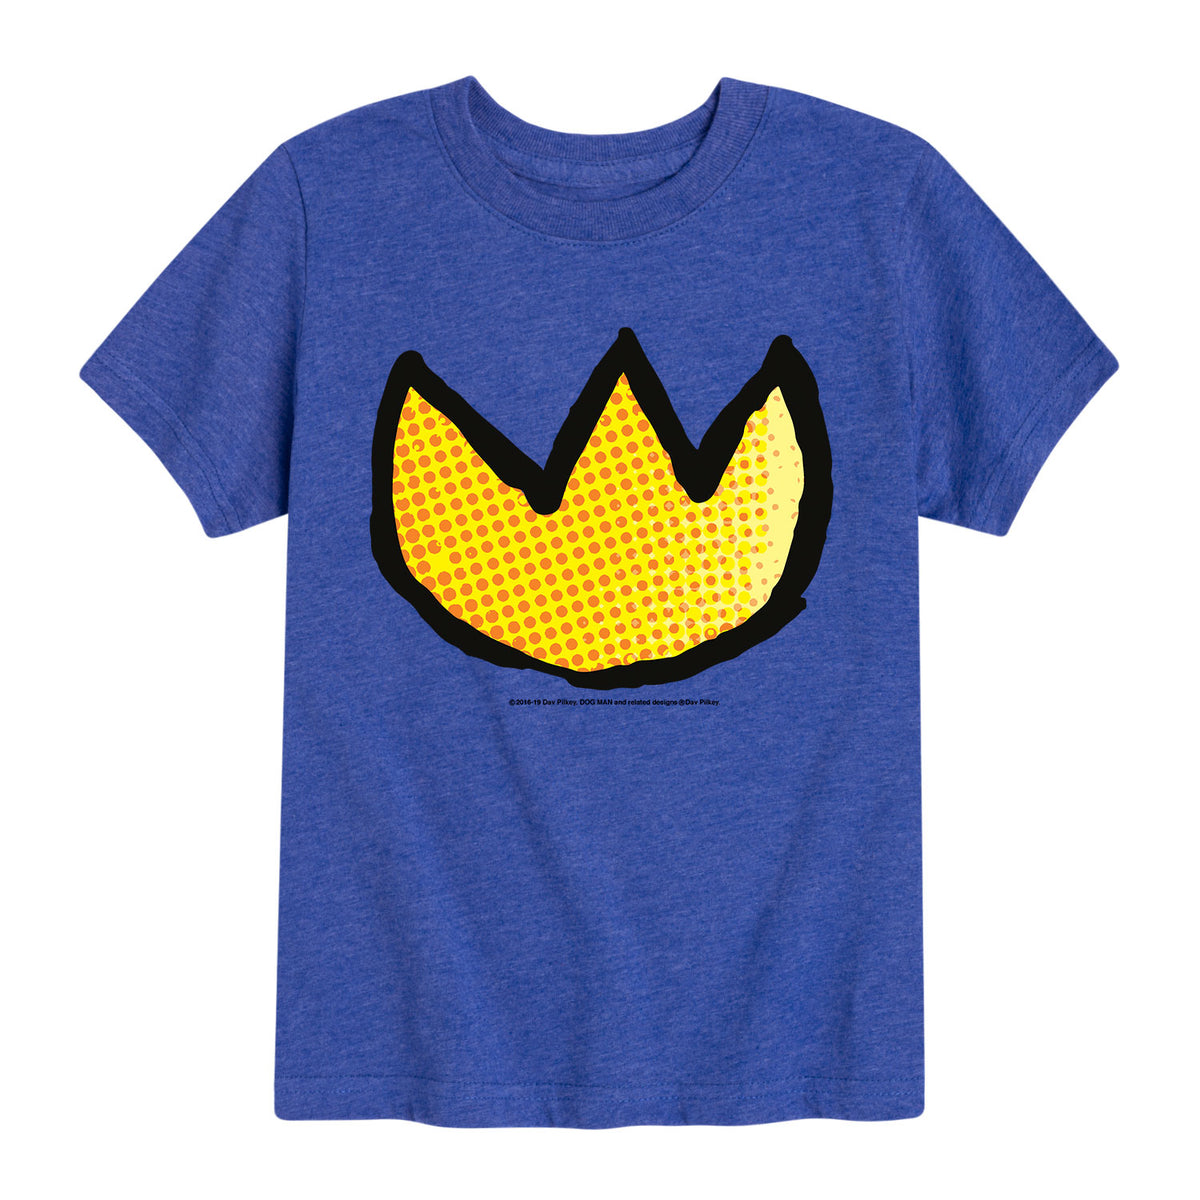 Dogman_Medallion_Dot Texture - Youth & Toddler Short Sleeve T-Shirt